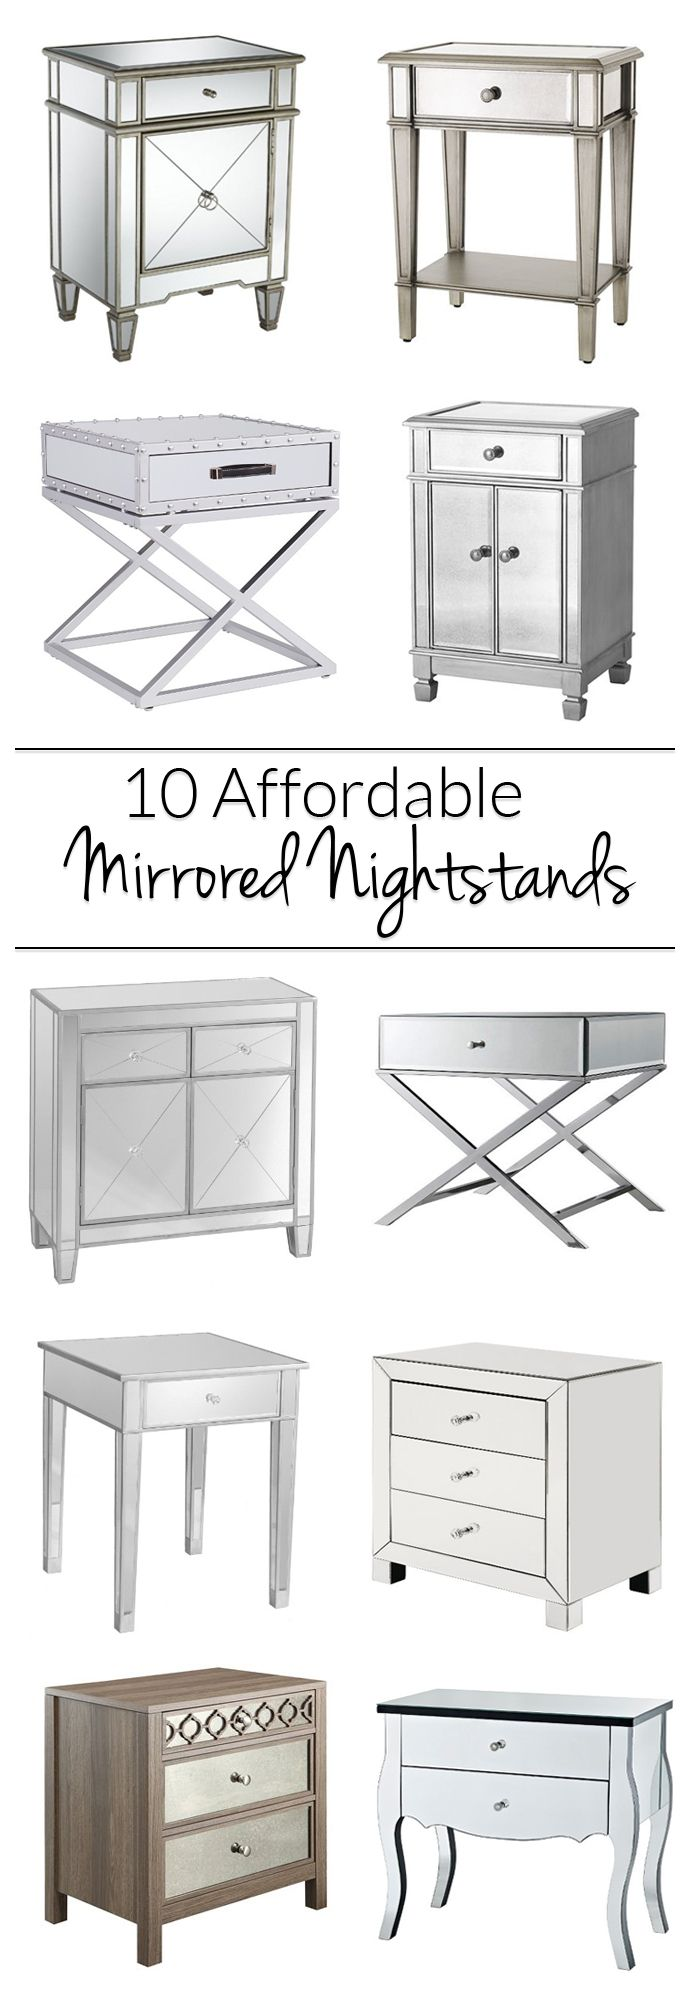 mirrored nightstands 10 cheap options - Cheap Mirrored Furniture